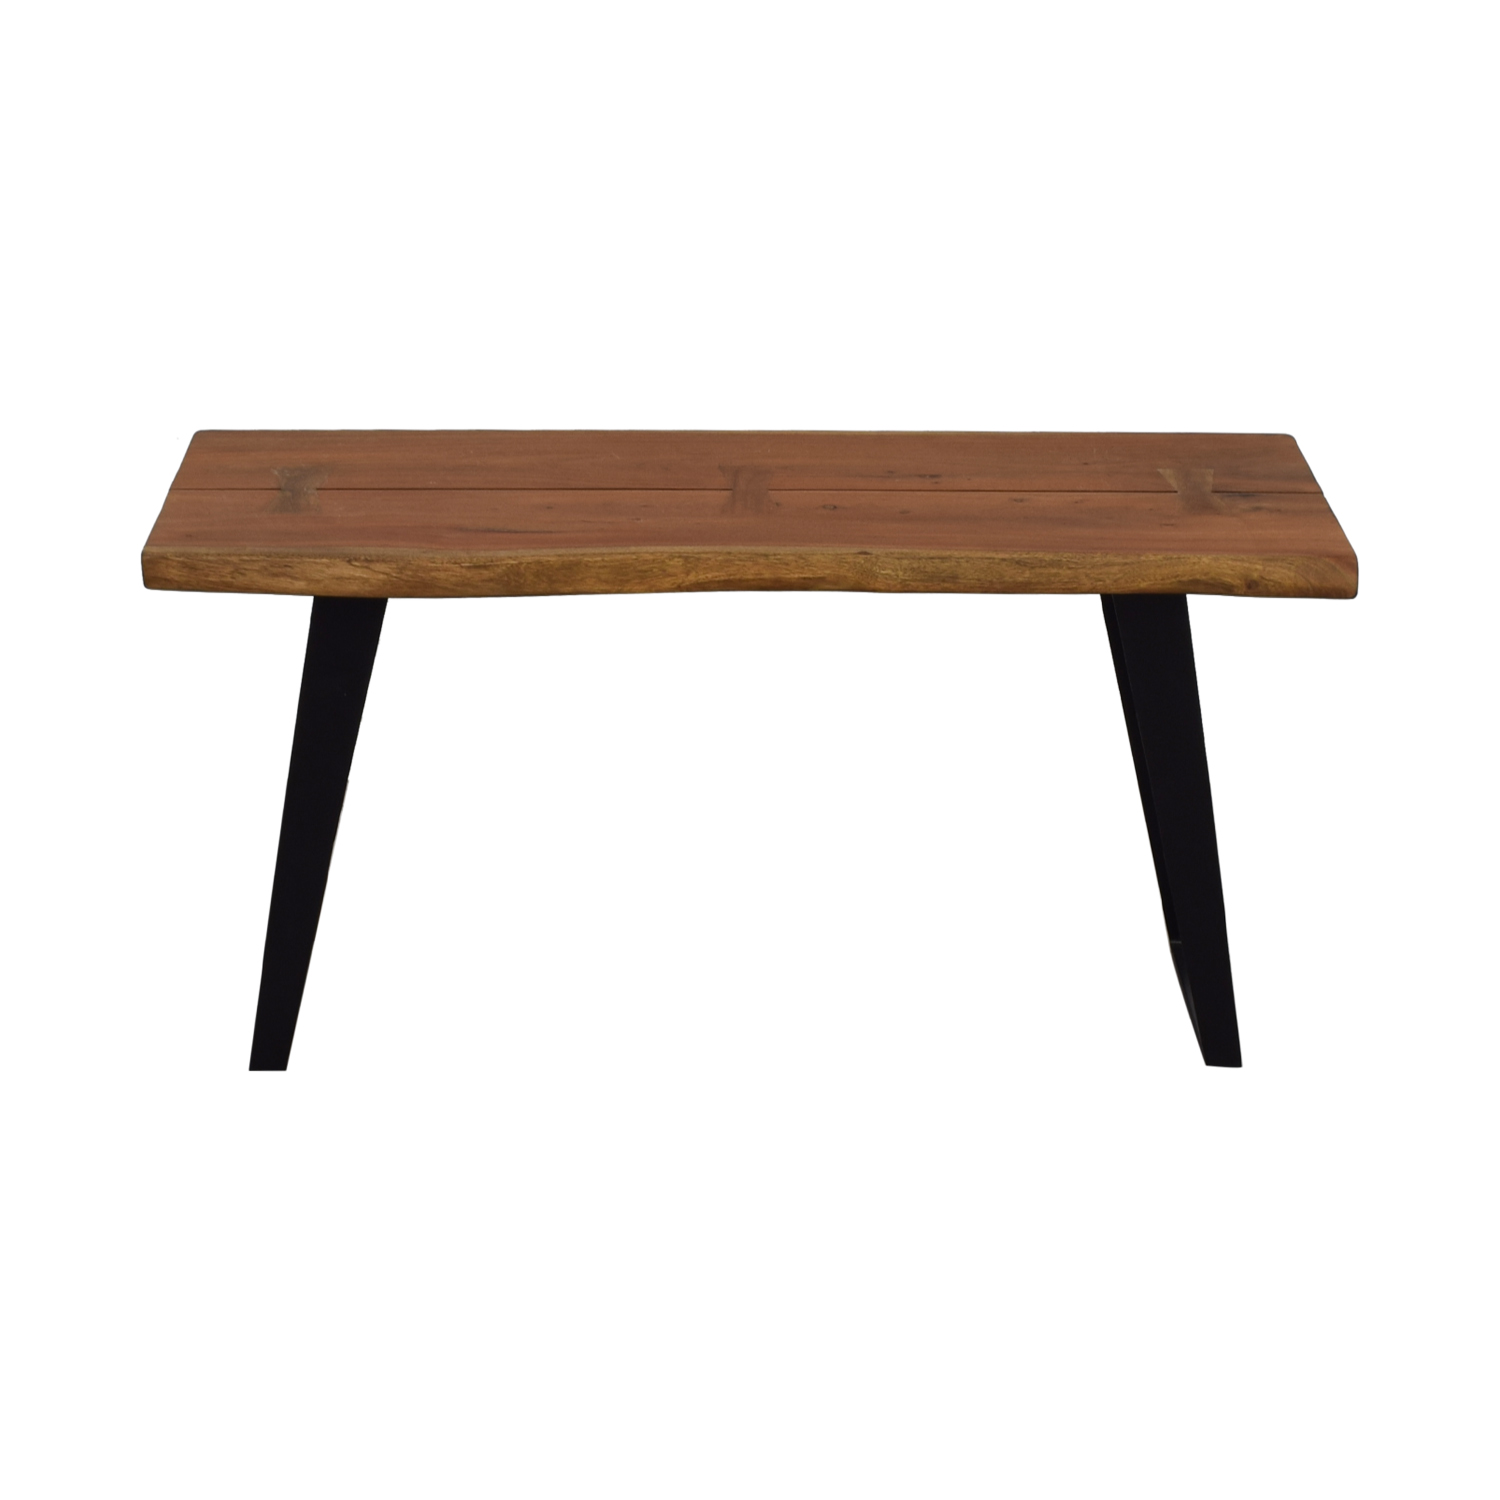 buy Crate & Barrel Yukon Wood and Metal Console Table Crate & Barrel Accent Tables